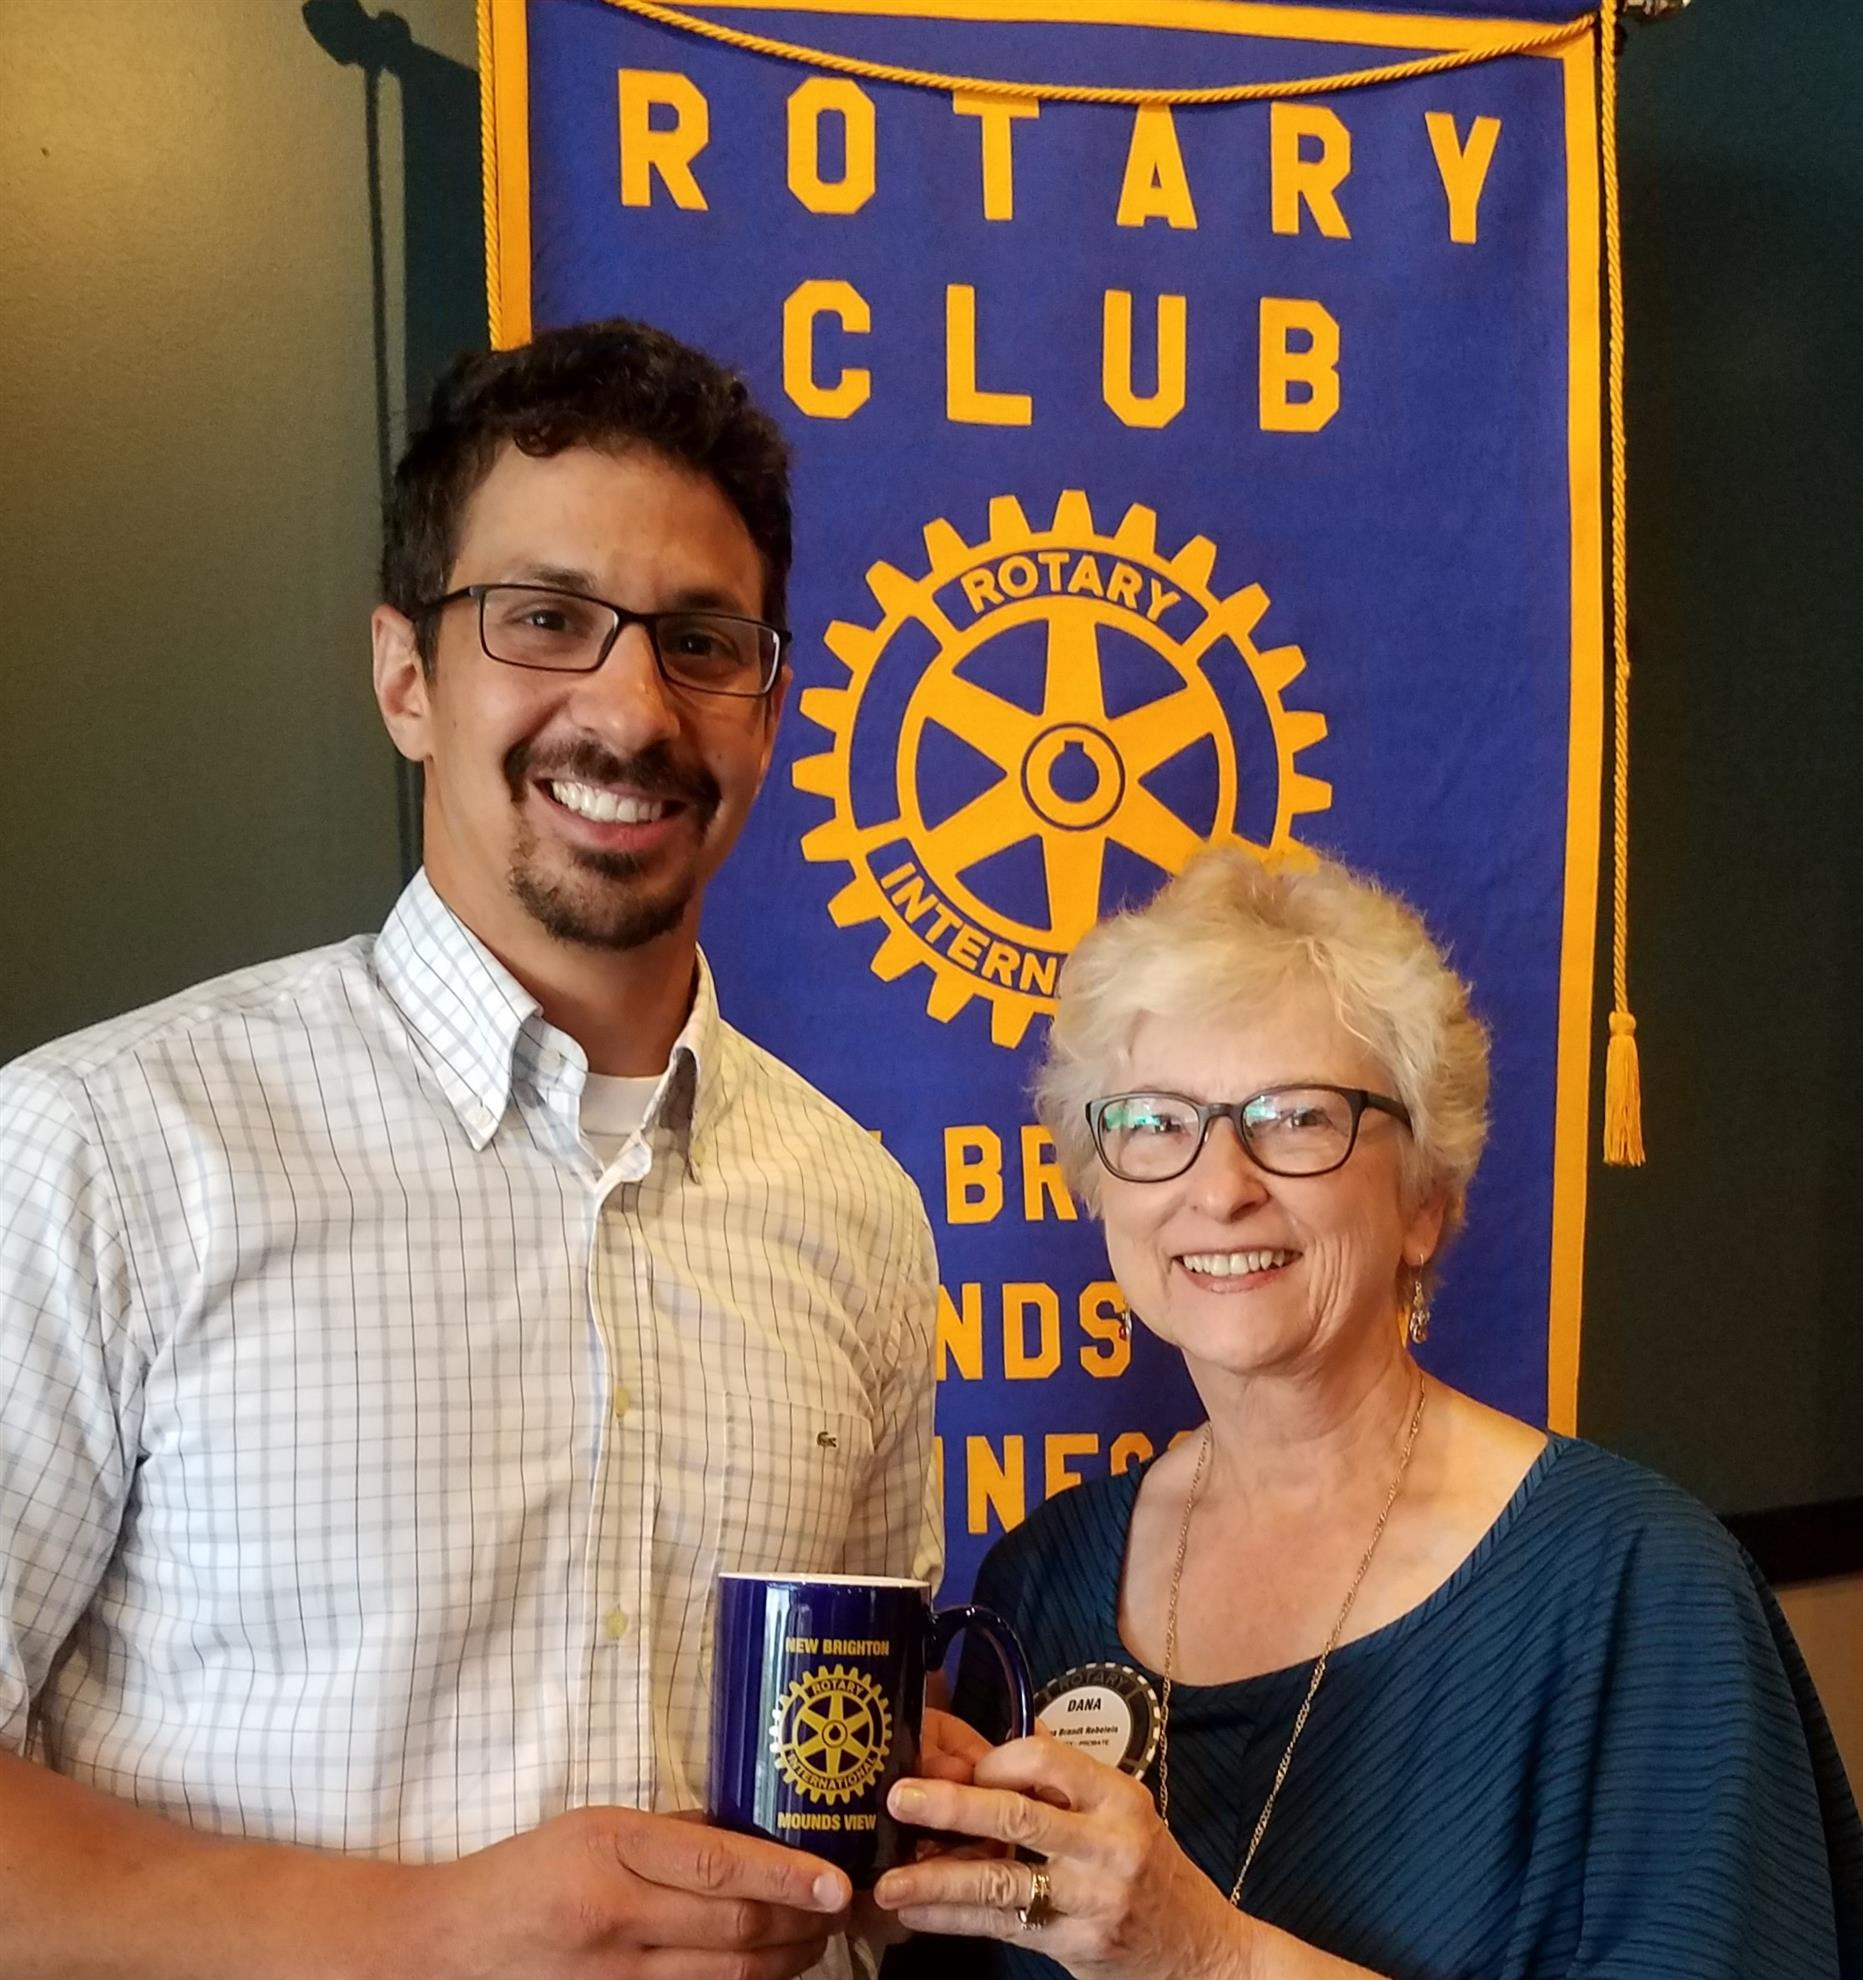 Home Page | Rotary Club of New Brighton Mounds View